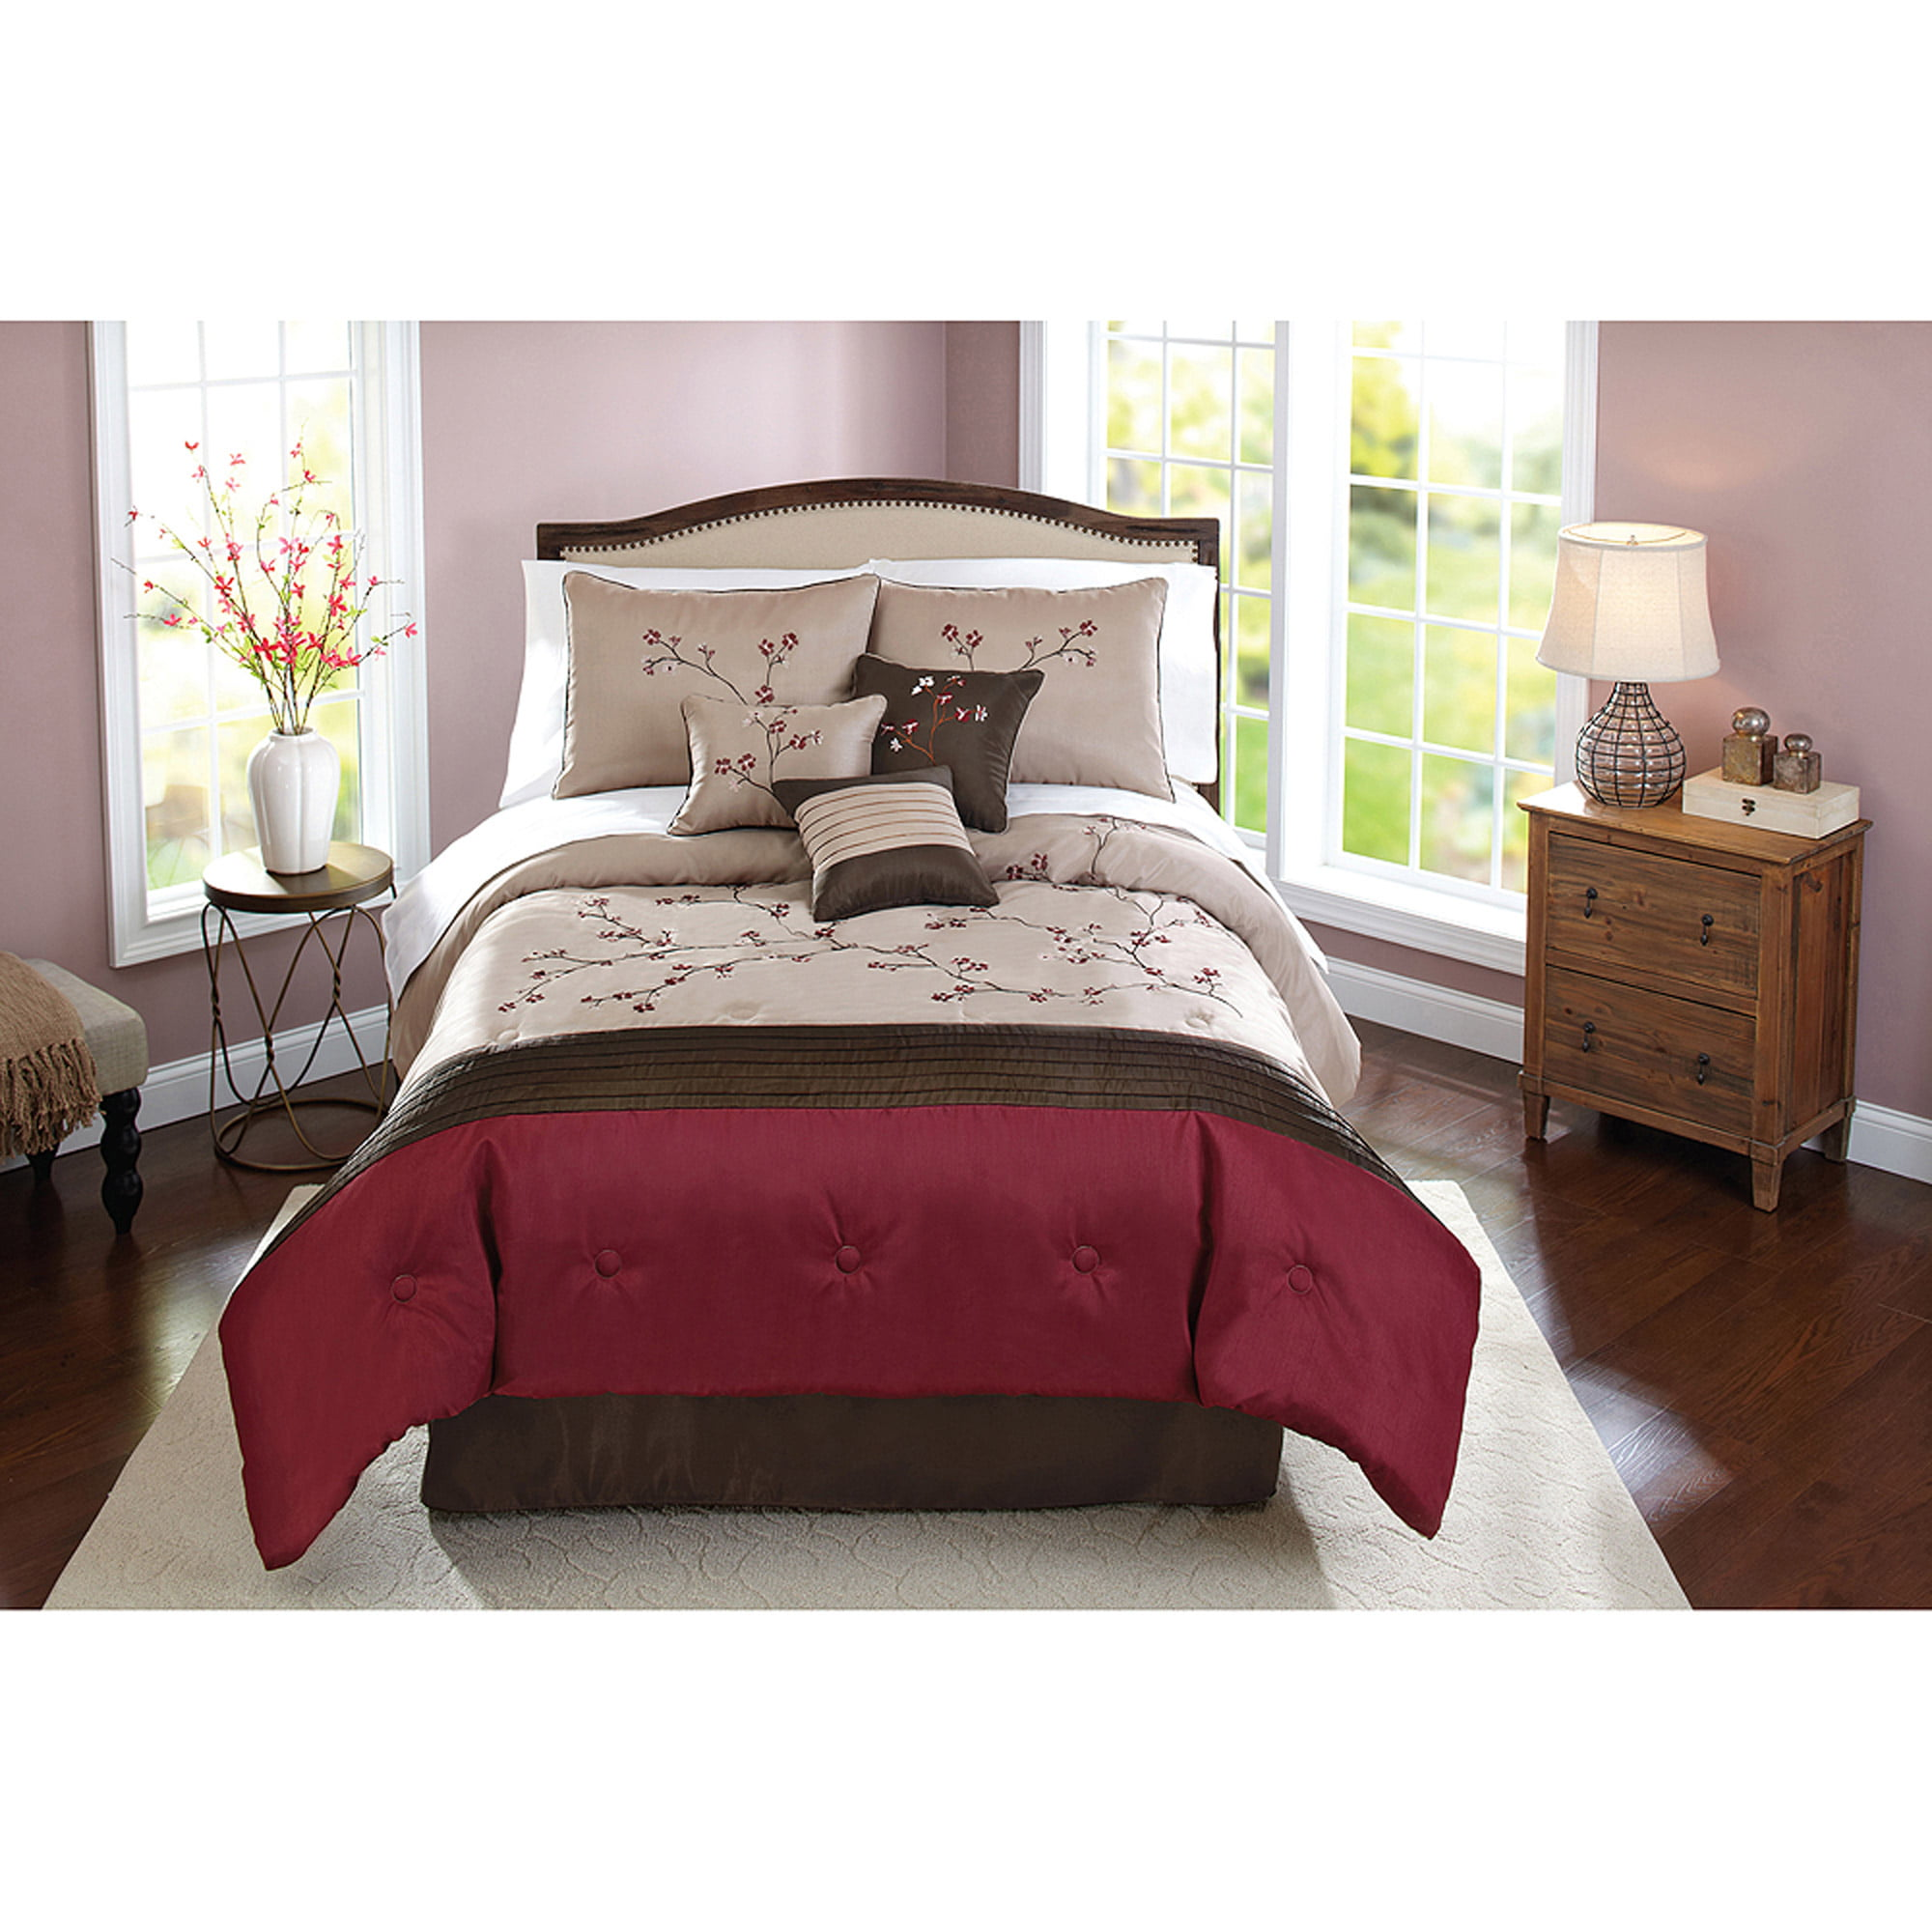 Better Homes and Gardens 7 Piece Therese Comforter Set Walmartcom